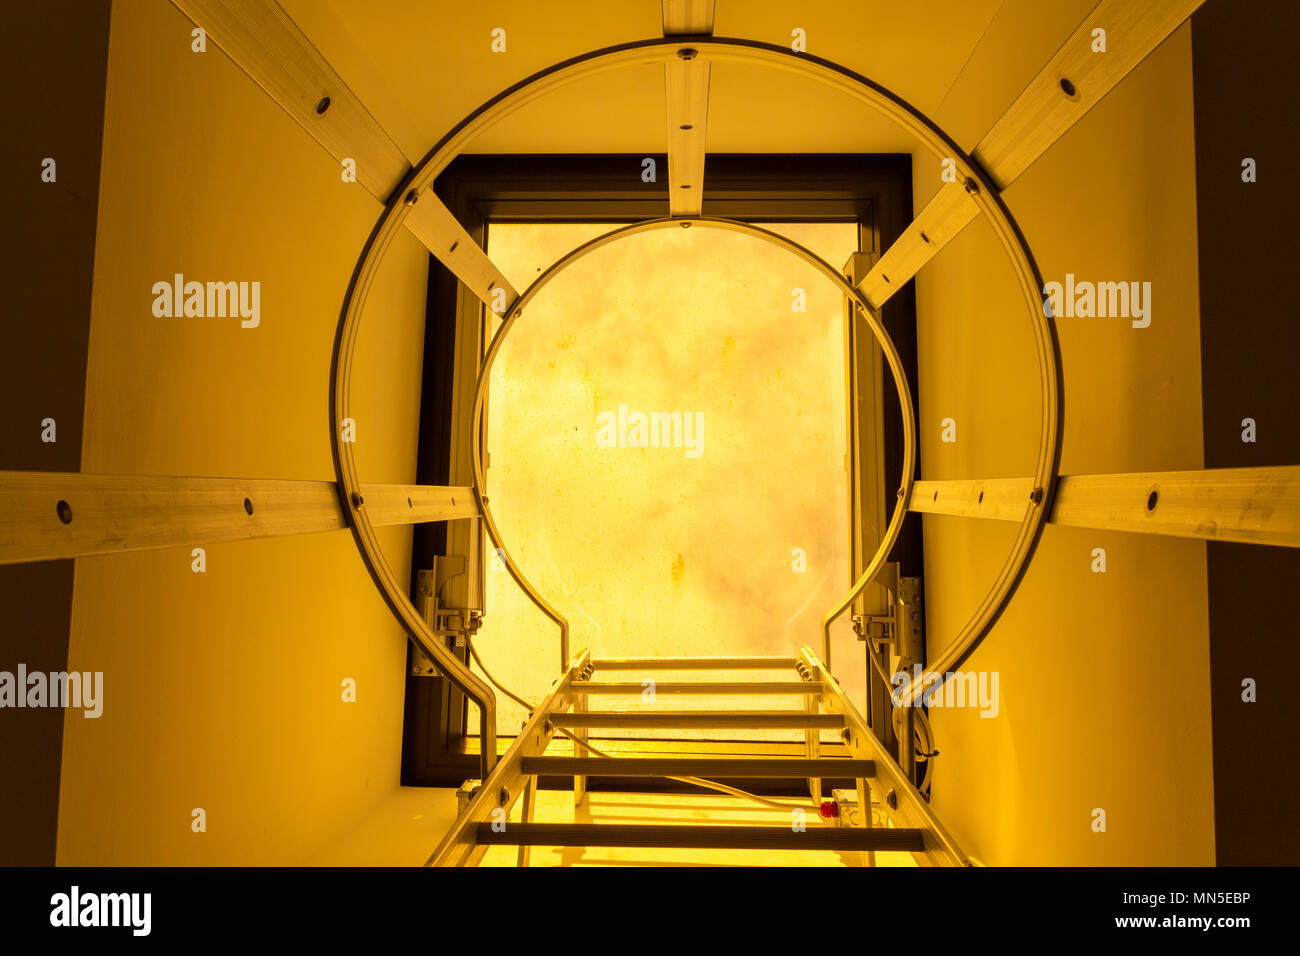 steel hooped ladder leading up onto a building roof, with a perspex clear cover letting the sunset light in. - Stock Image